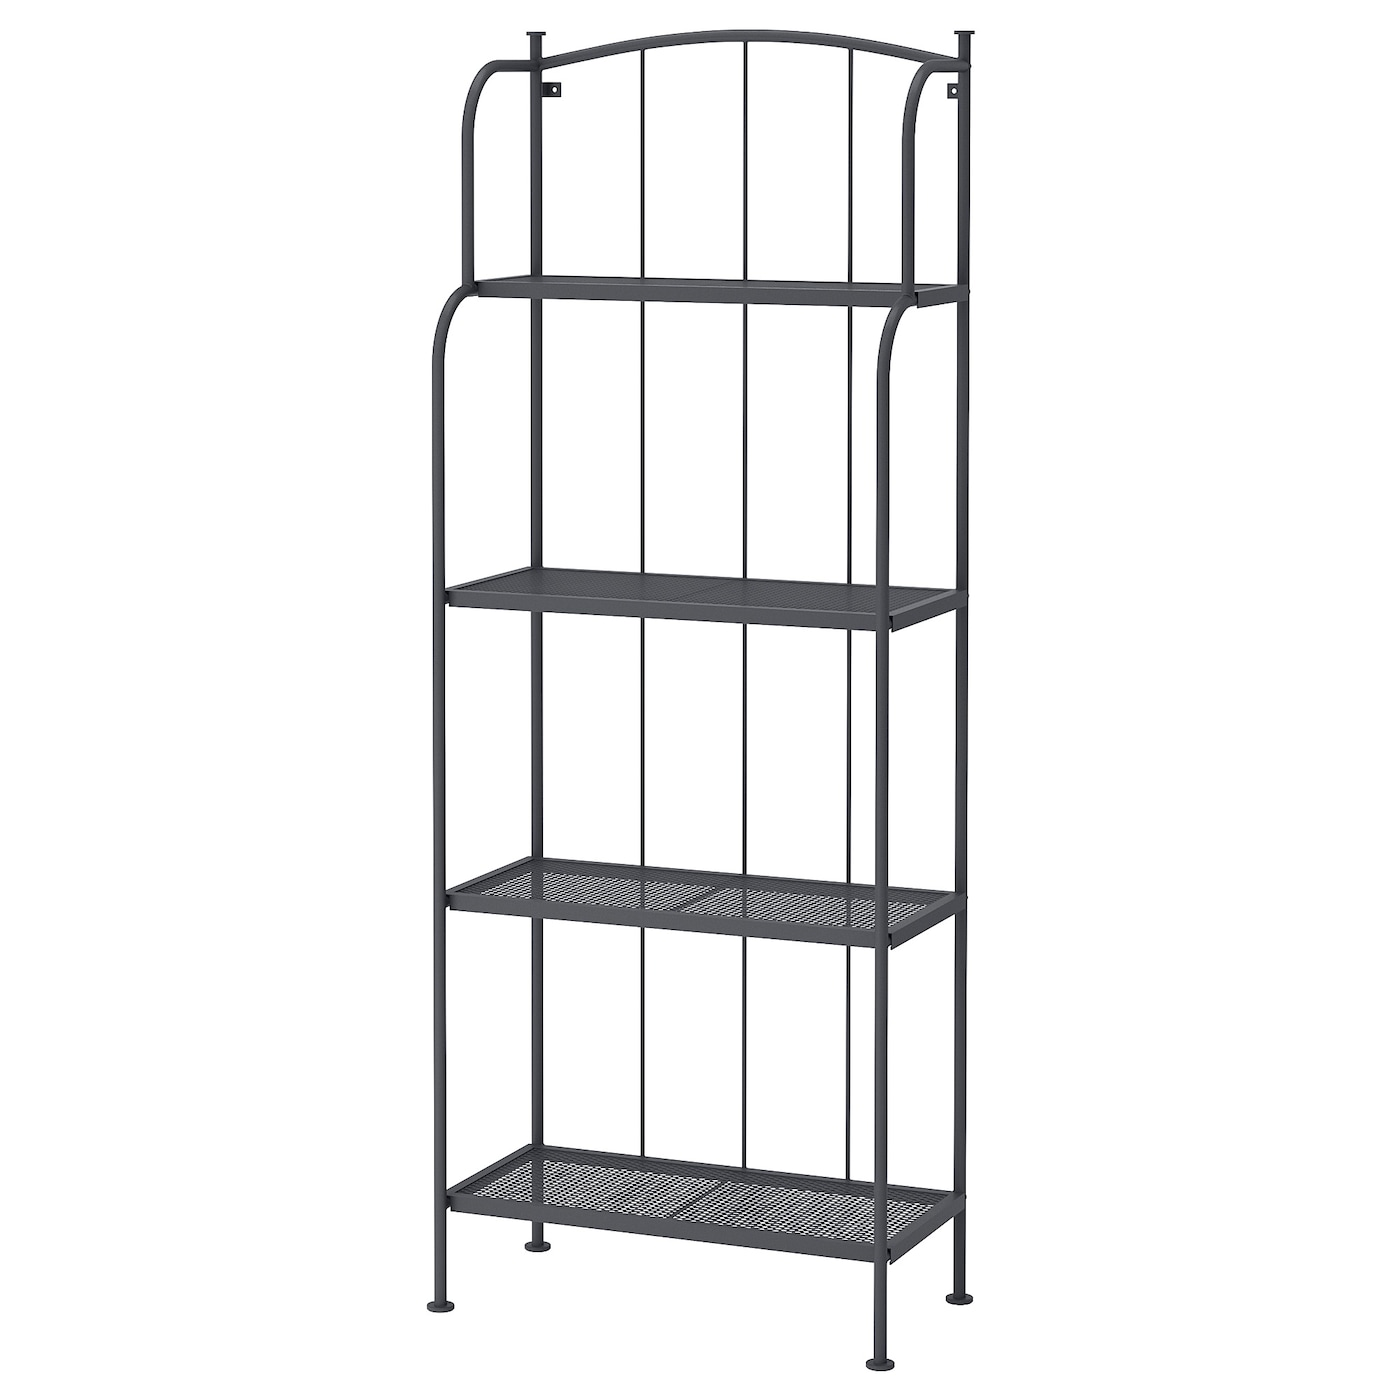 Magnificent Lacko Shelving Unit Outdoor Gray Download Free Architecture Designs Scobabritishbridgeorg